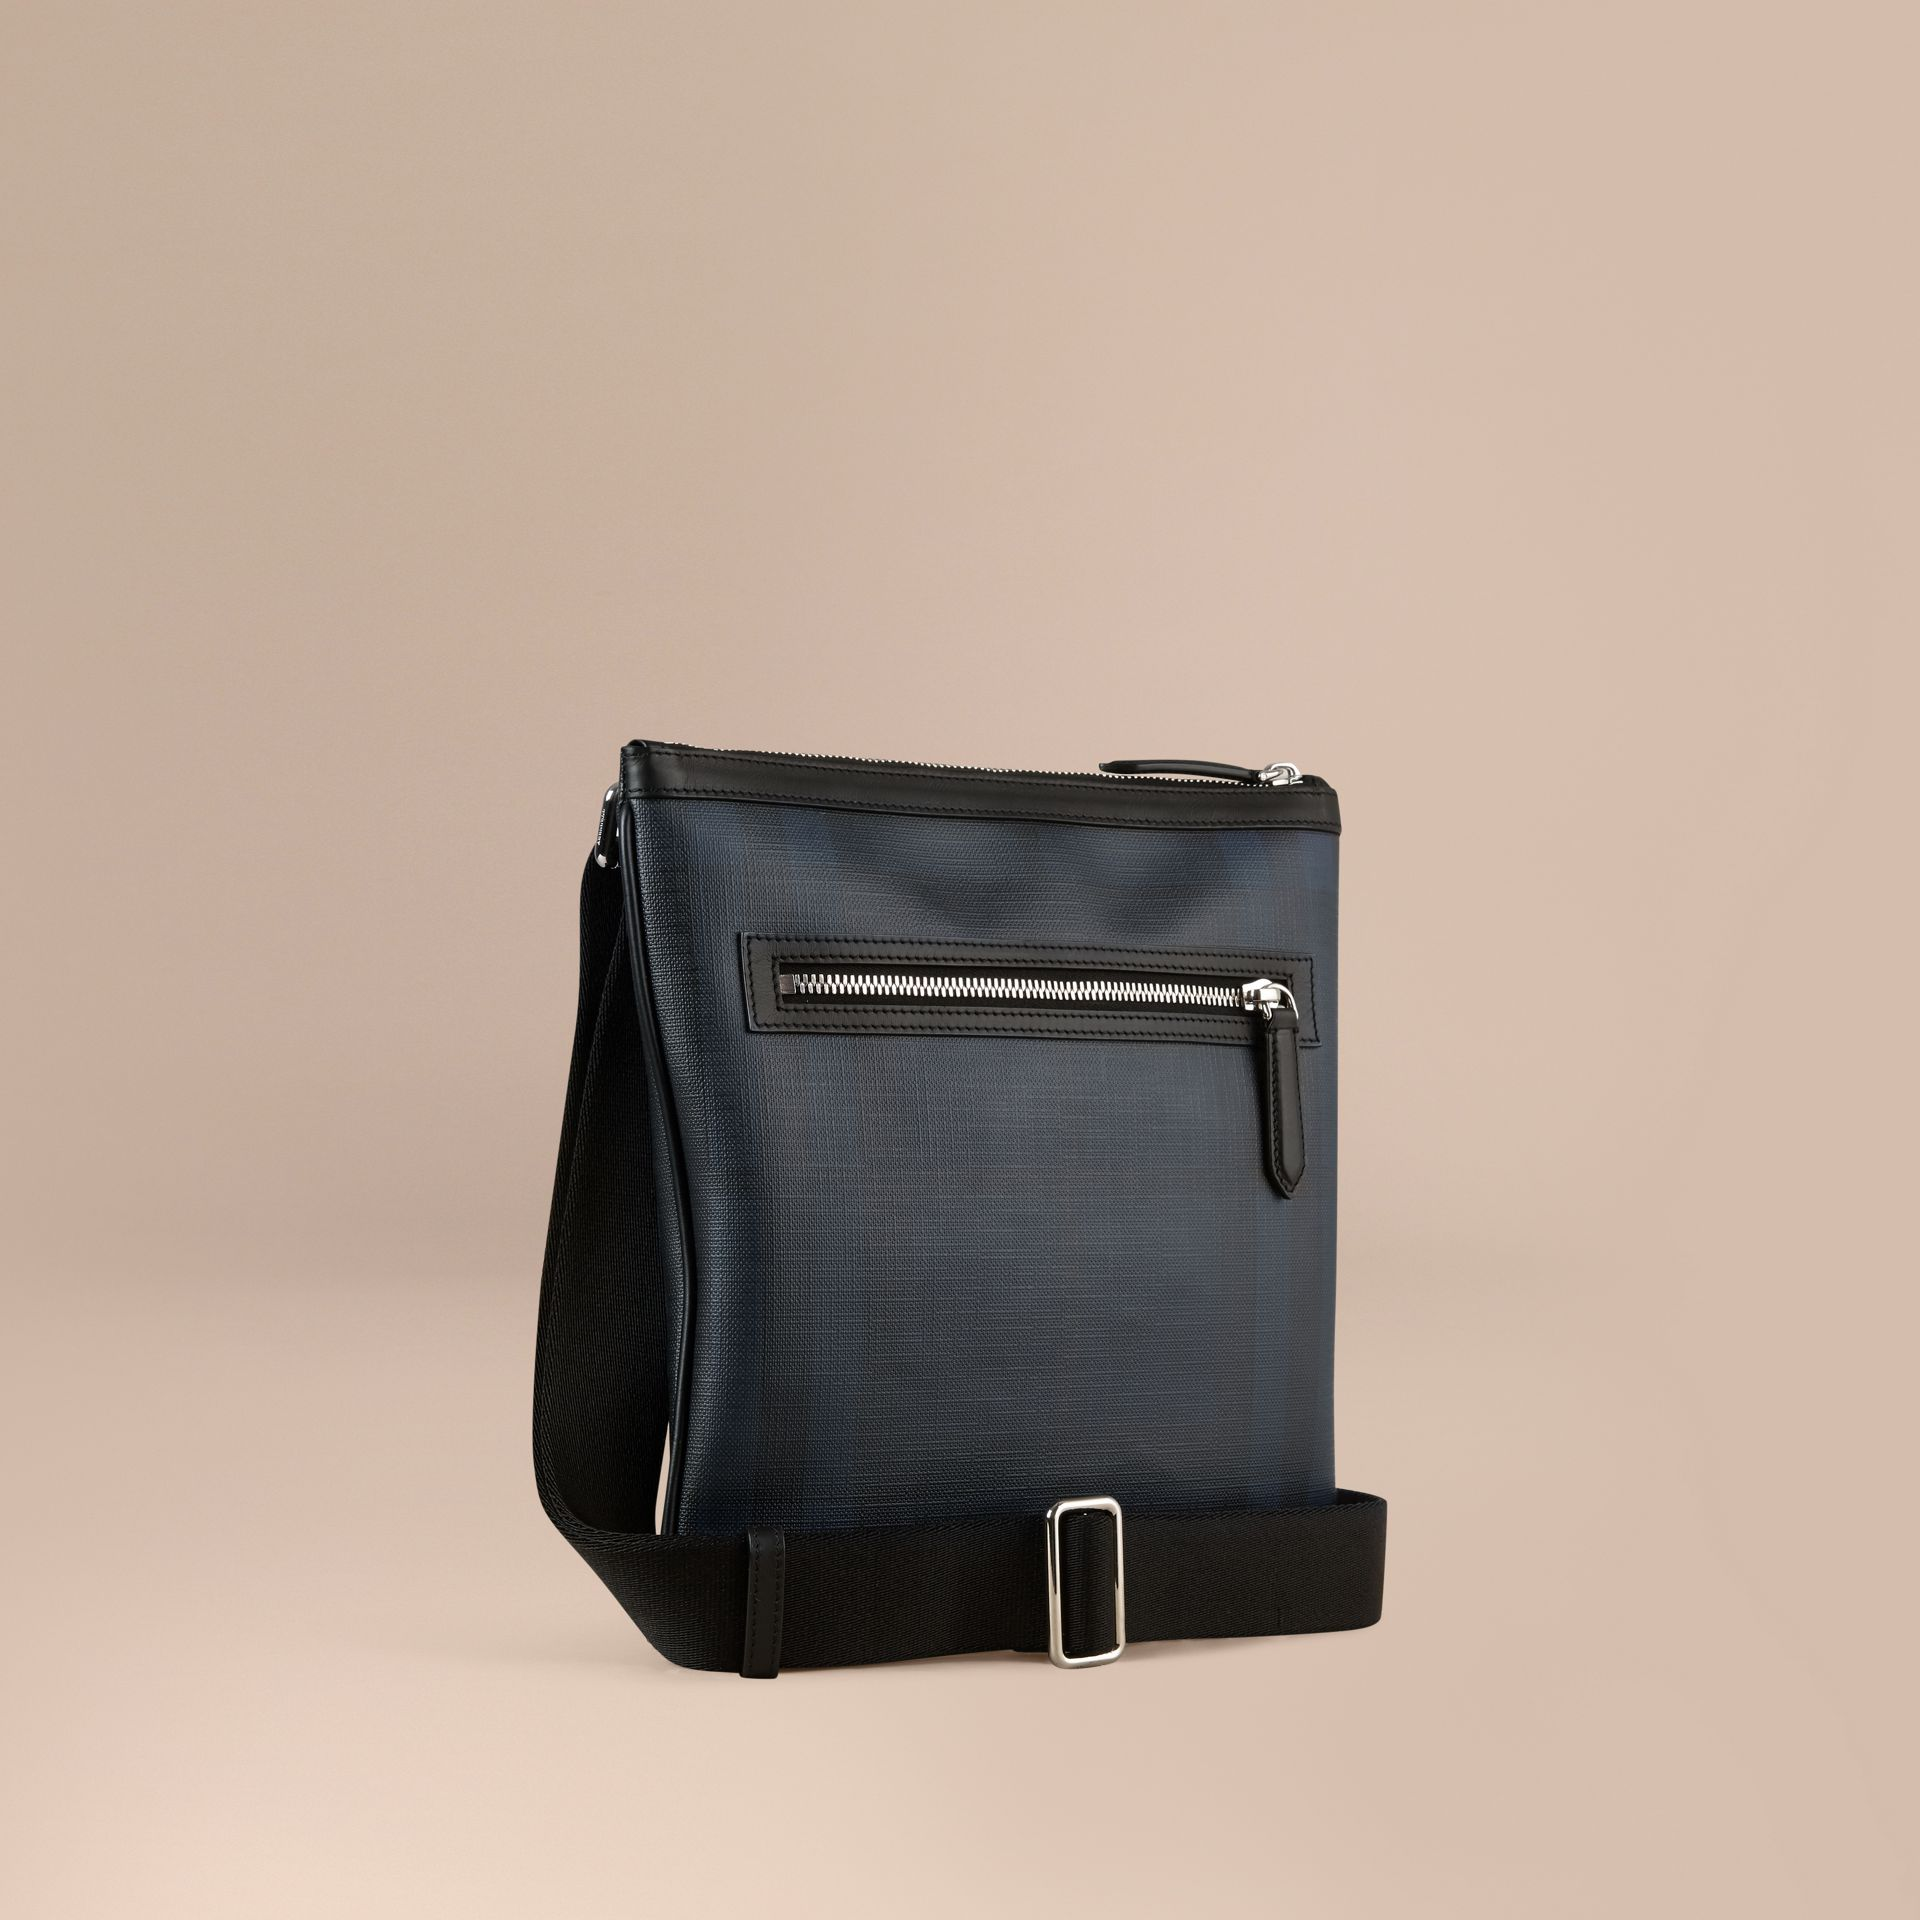 Navy/black Leather Trim London Check Crossbody Bag Navy/black - gallery image 1